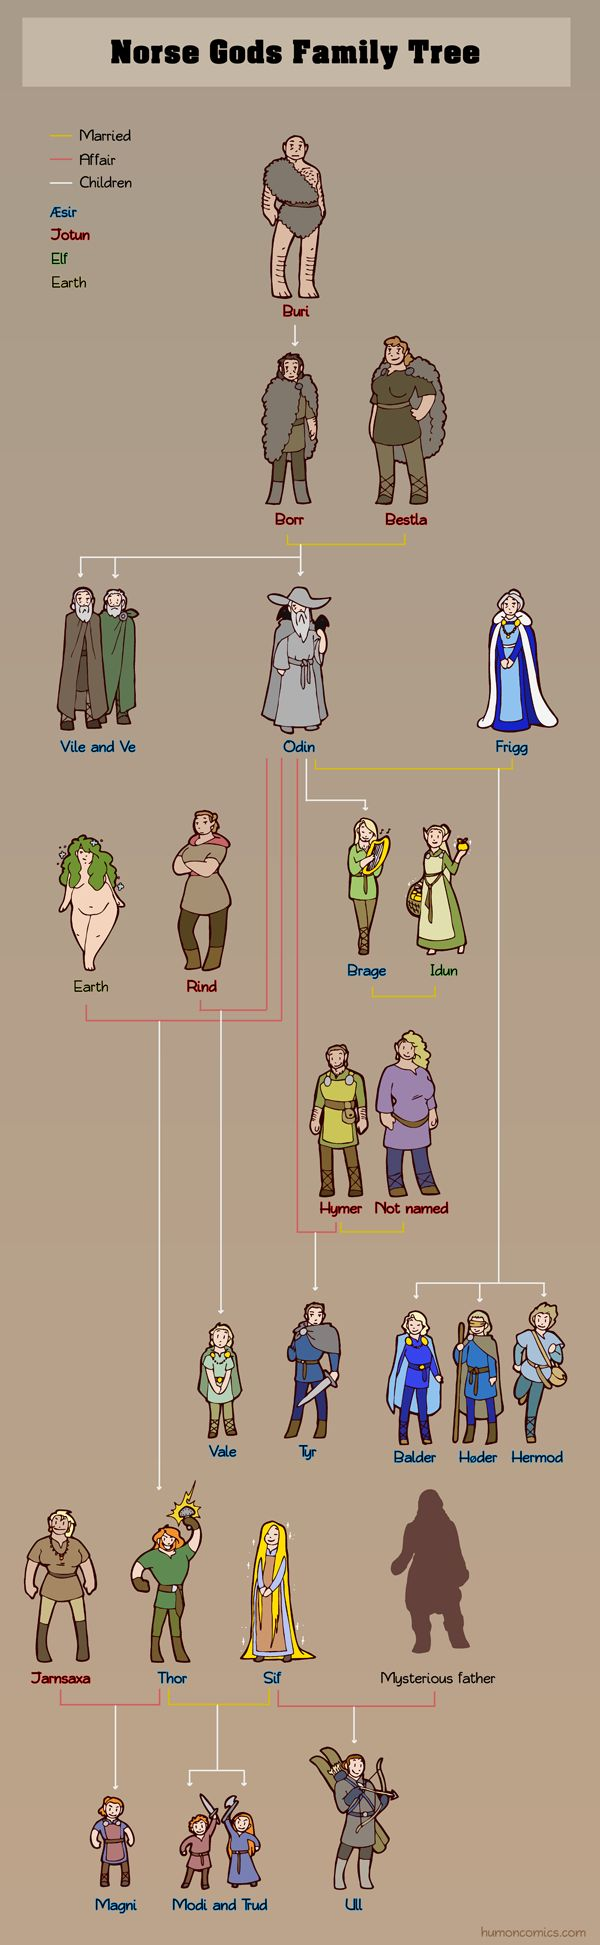 Norse Gods Family Tree by humon.deviantart.com on @DeviantArt